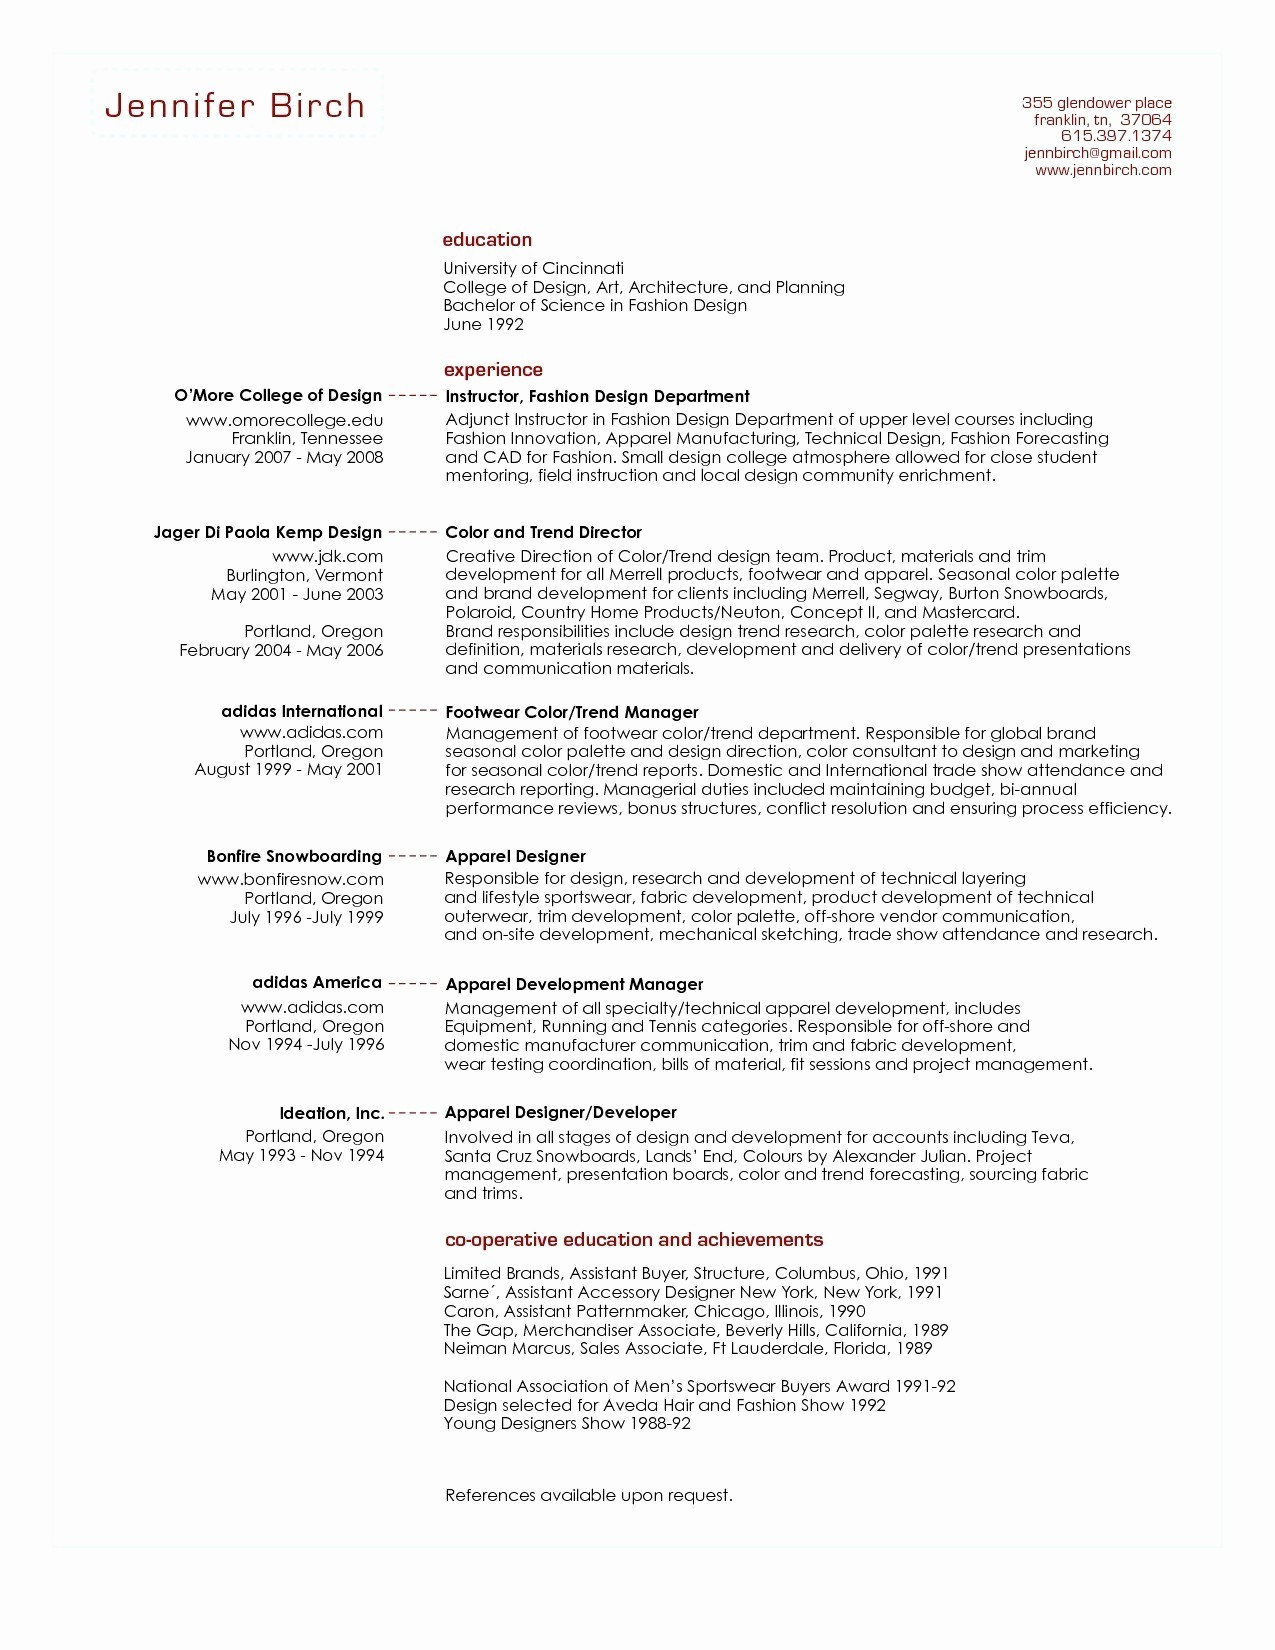 vp resume template example-New Resume Cv Executive Sample Luxury Resume Examples 0d What is the 12-p